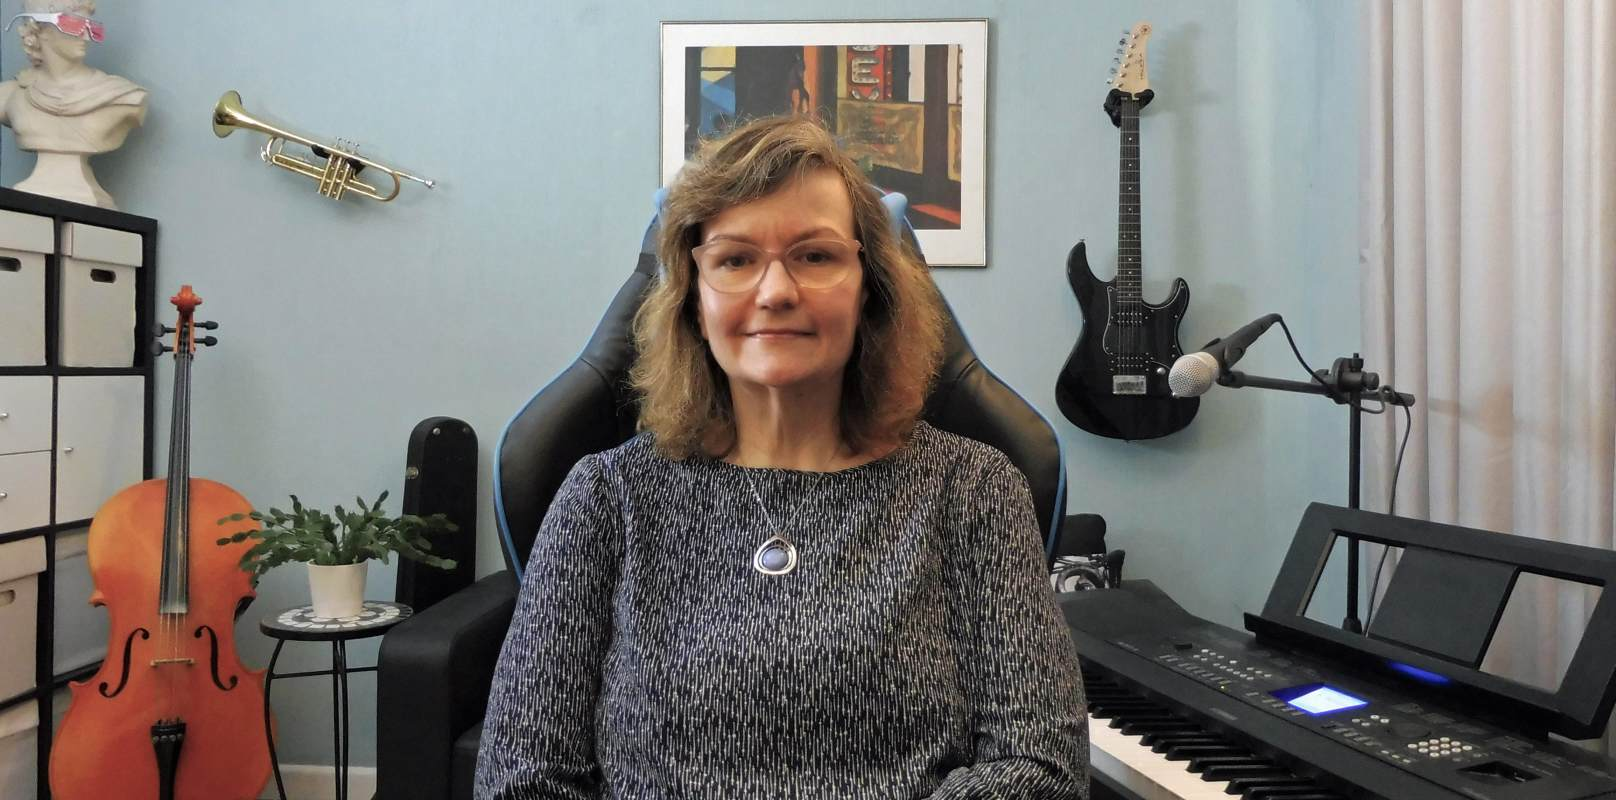 Penny Penelope Tedd, Piano Keyboard Cello Trumpet teacher from Bognor Regis, West Sussex. Travels out and online lessons.